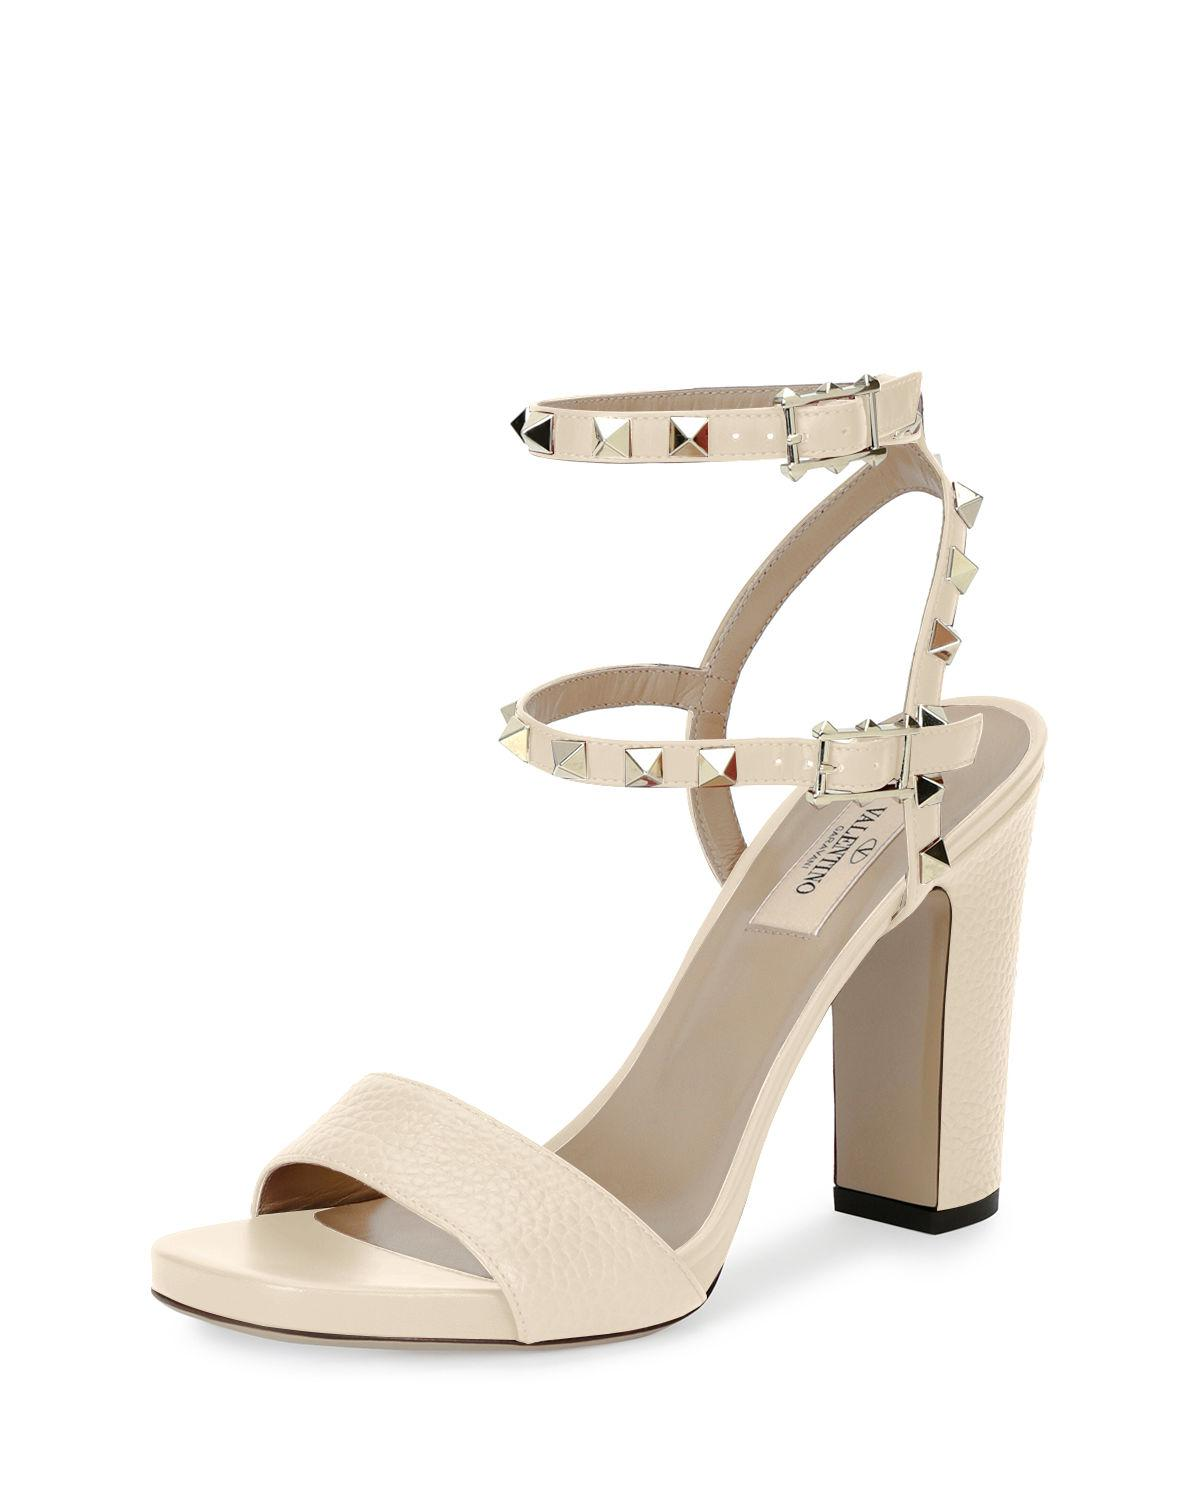 a223827f4a97 Valentino Rockstud 100mm Chunky-heel Sandal in White - Lyst